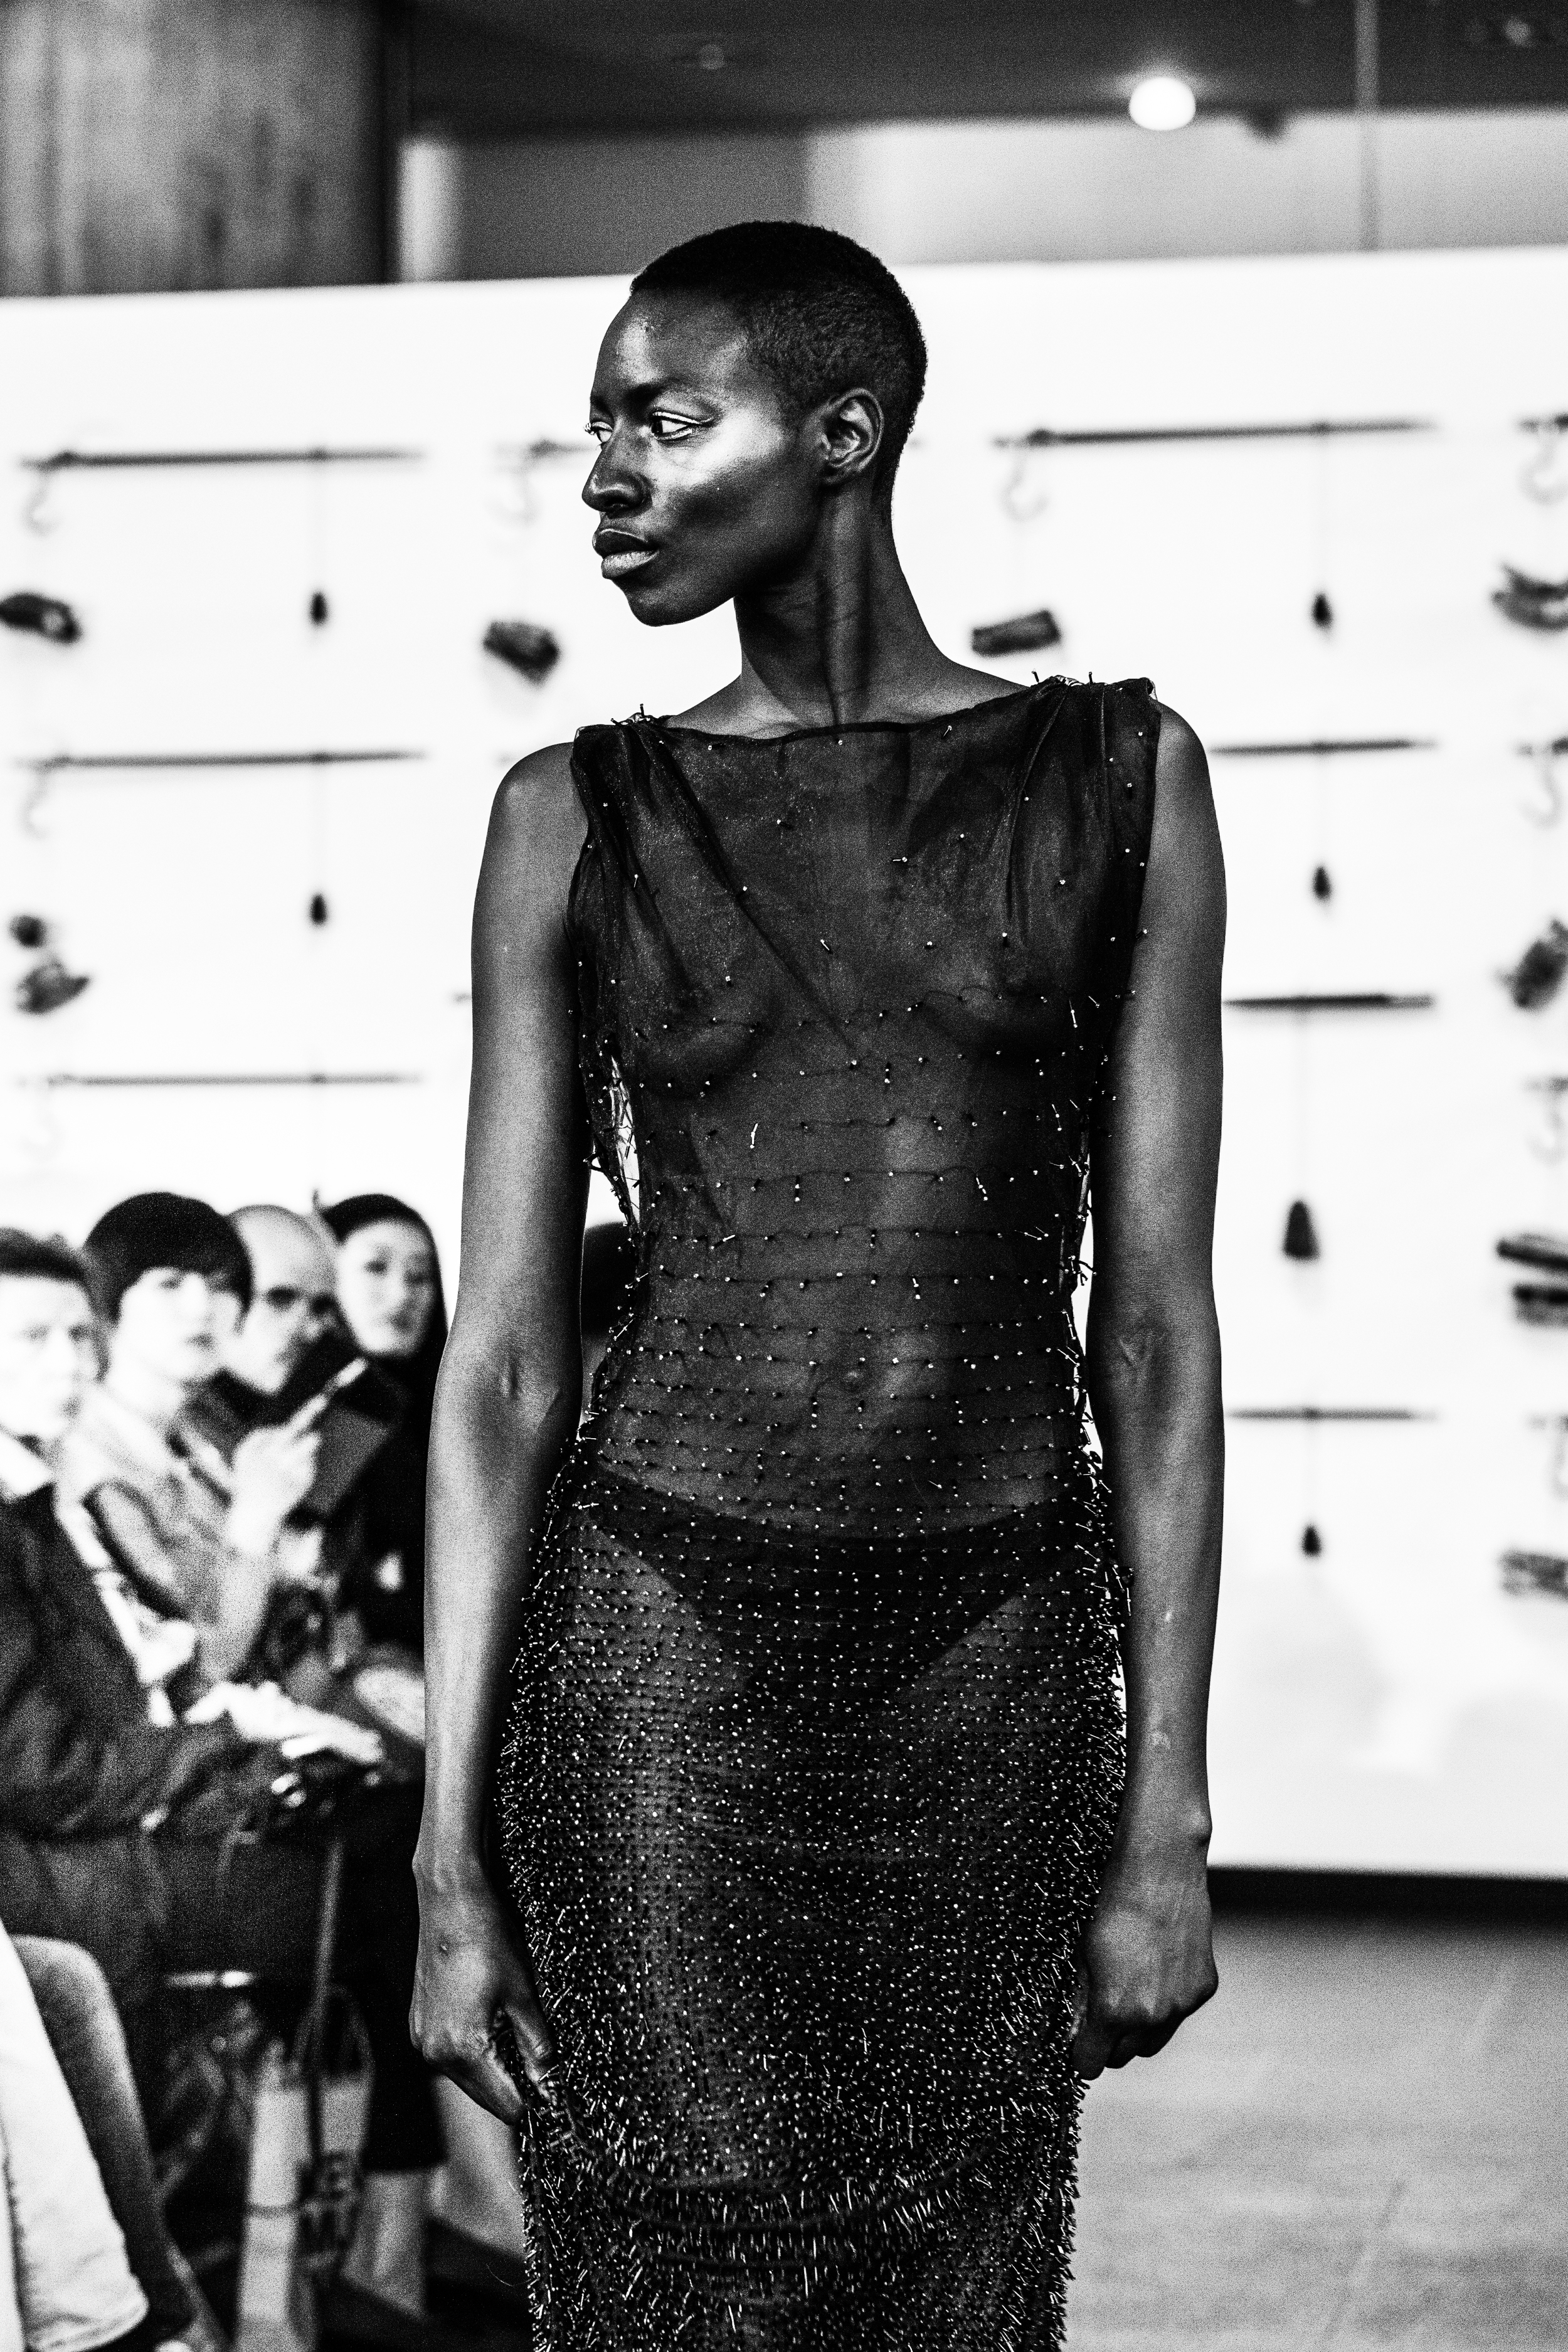 bowie wong haute couture fall/winter 2014/15 photography by arpa poonsriratt      S/TUDIO